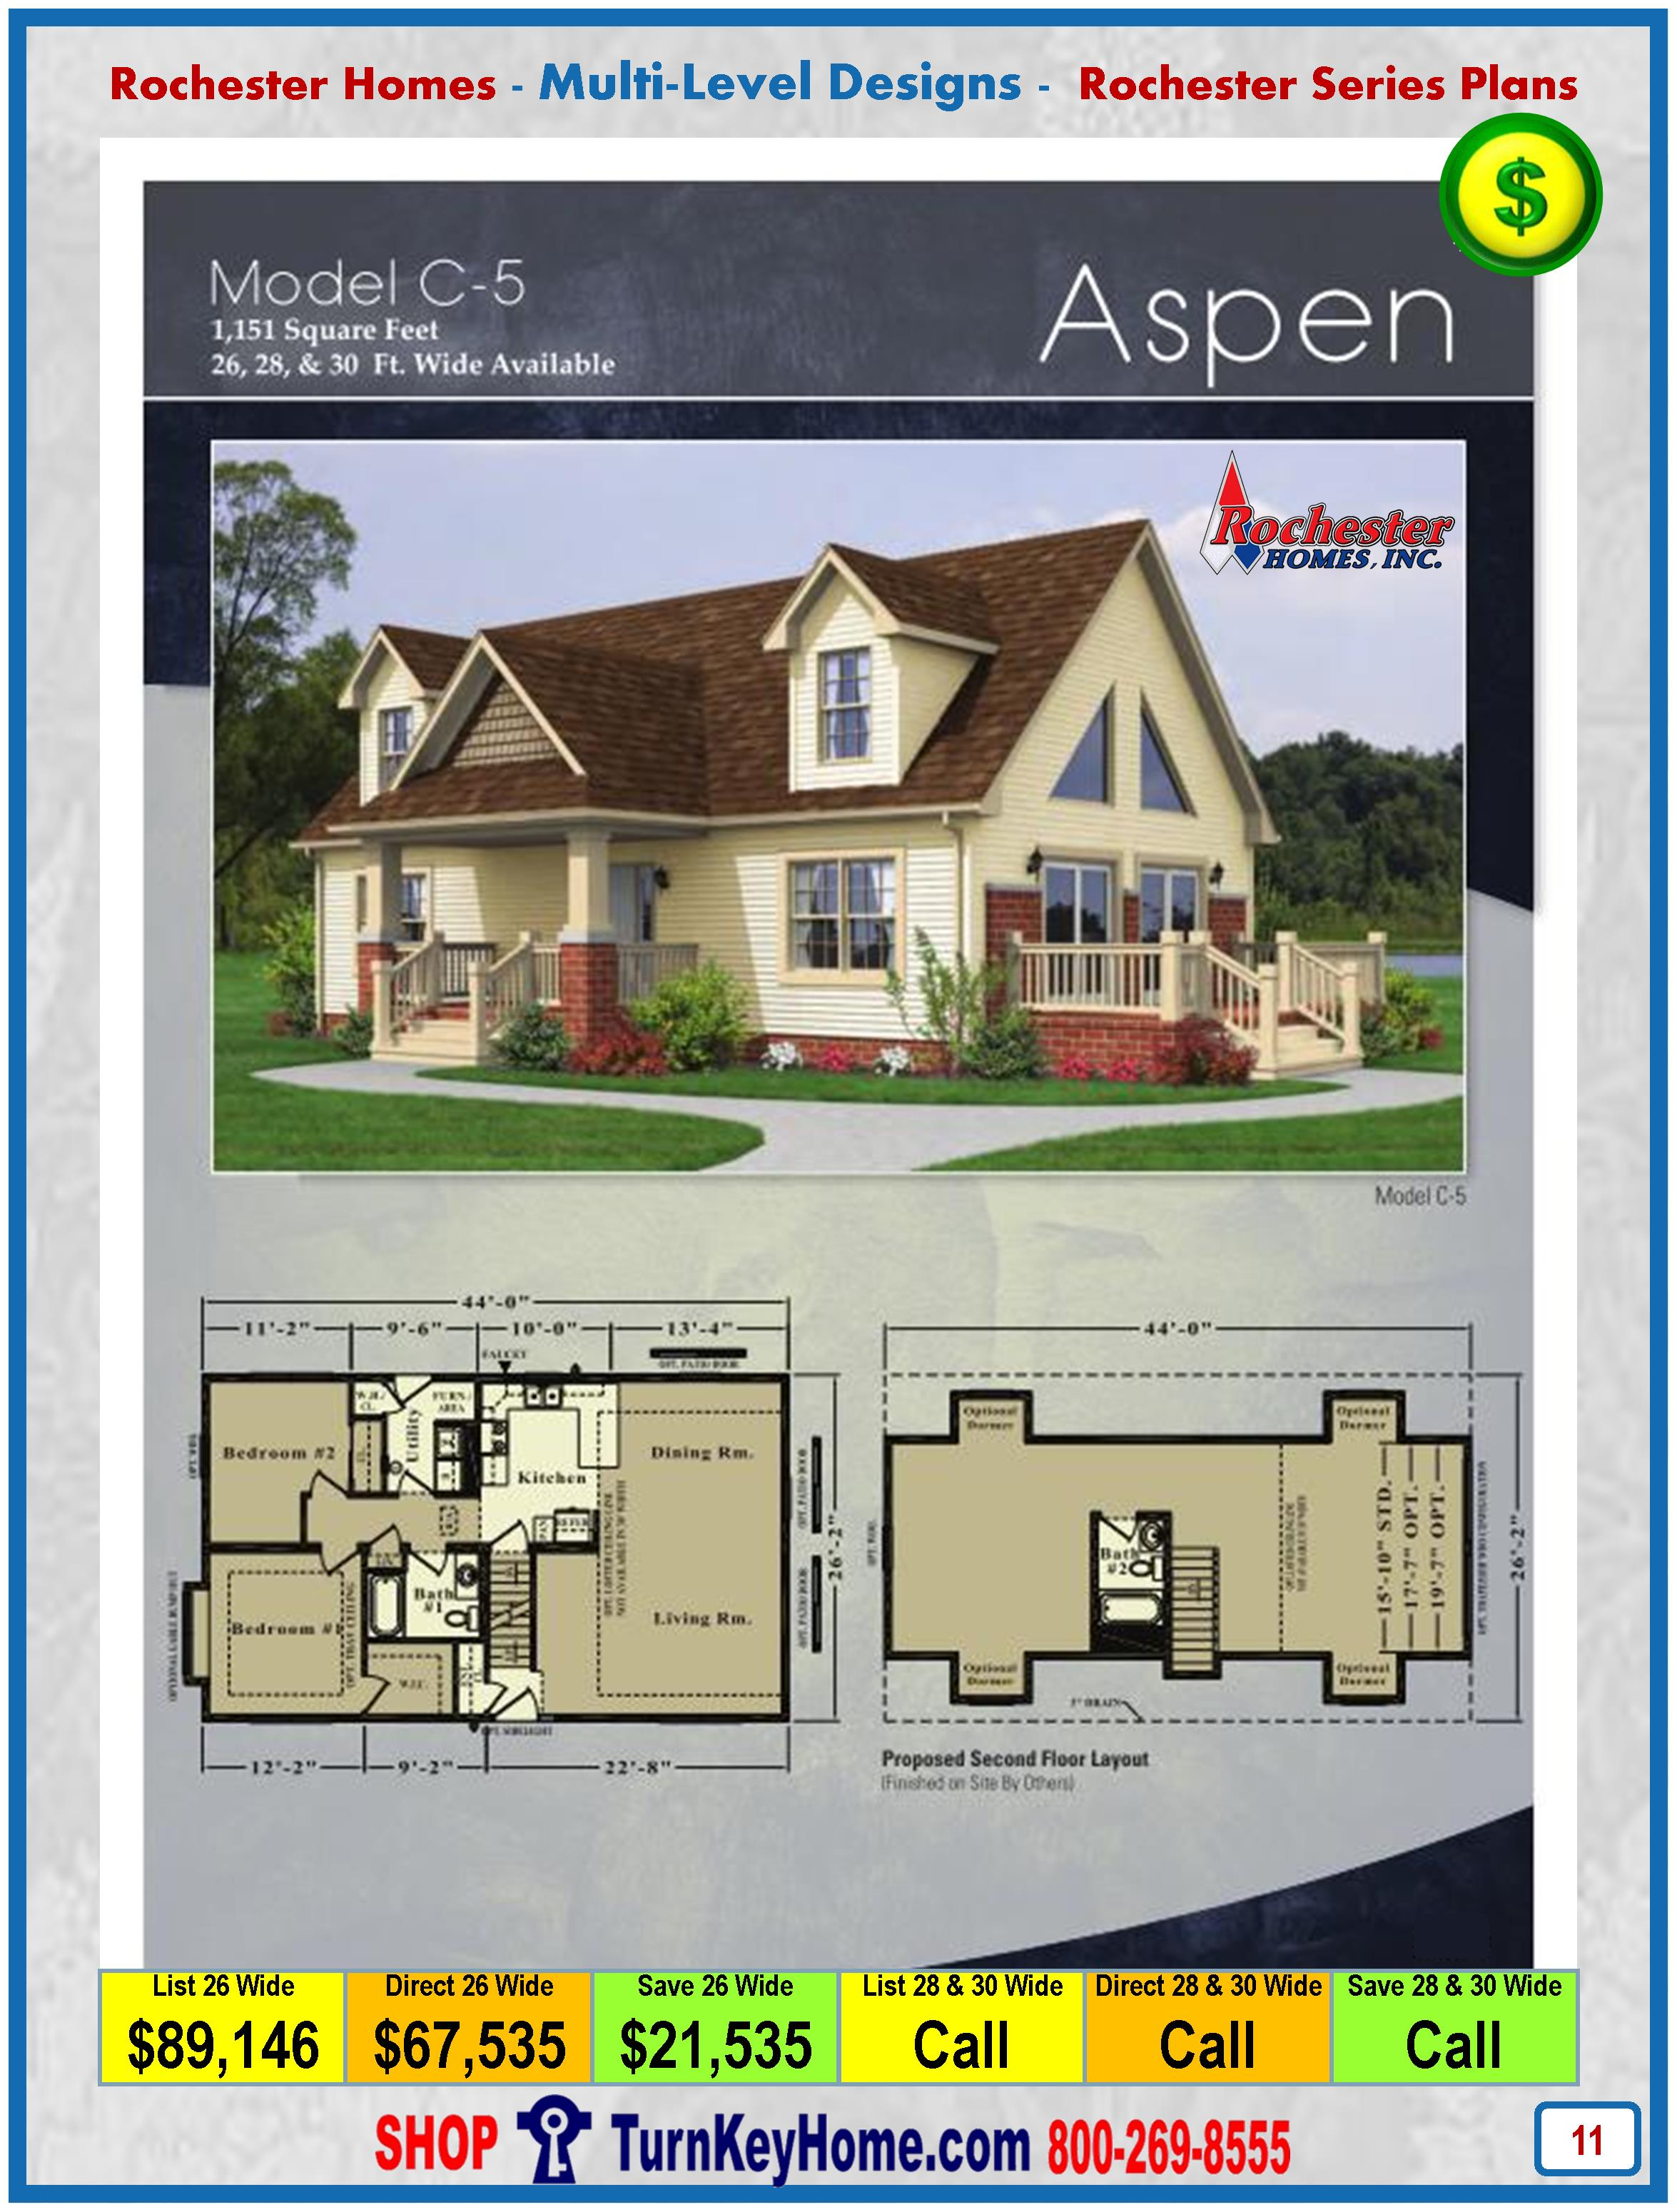 Aspen Rochester Modular Home Cape Cod Multi Level Plan Price